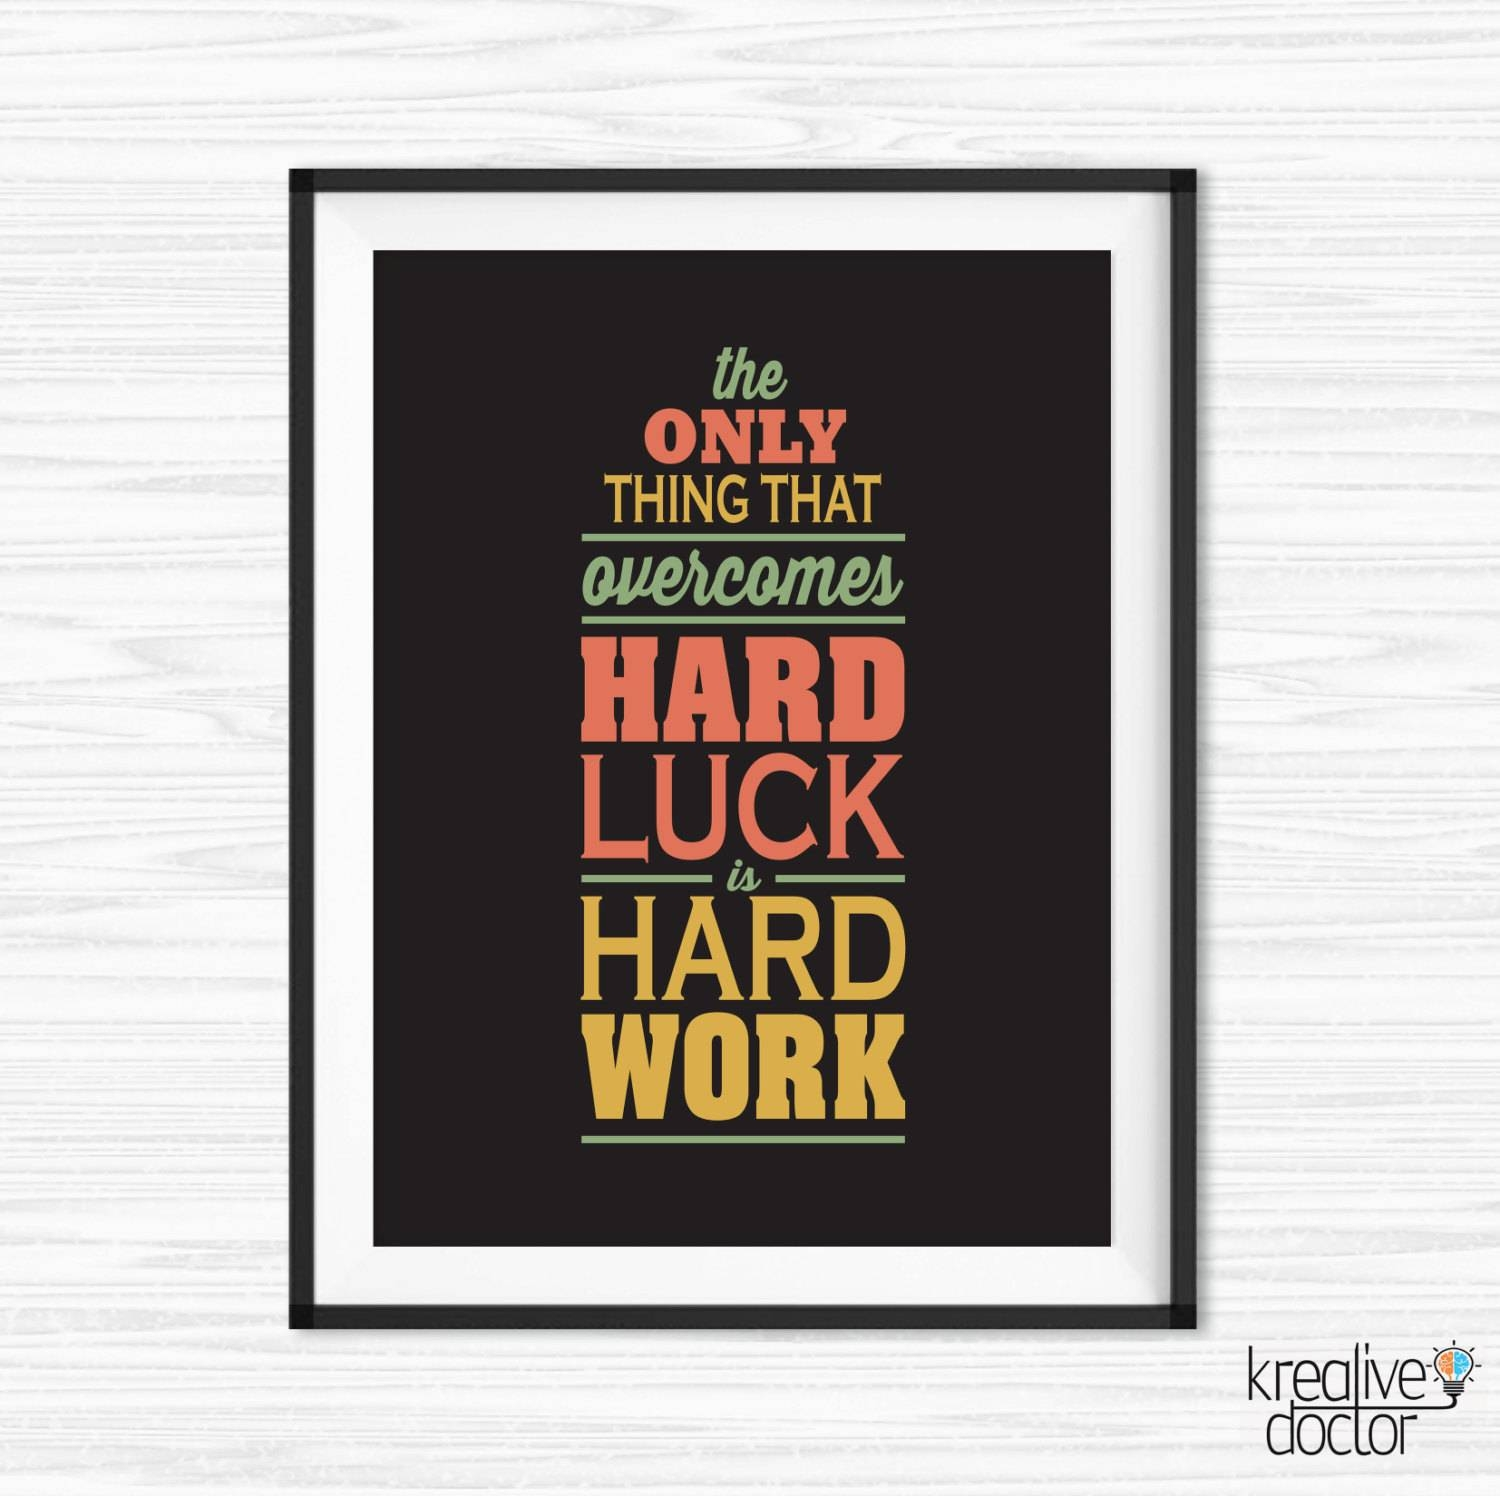 Work Hard Quote Office Wall Art Motivational Wall Decor With Regard To Most Up To Date Inspirational Wall Art For Office (View 20 of 20)